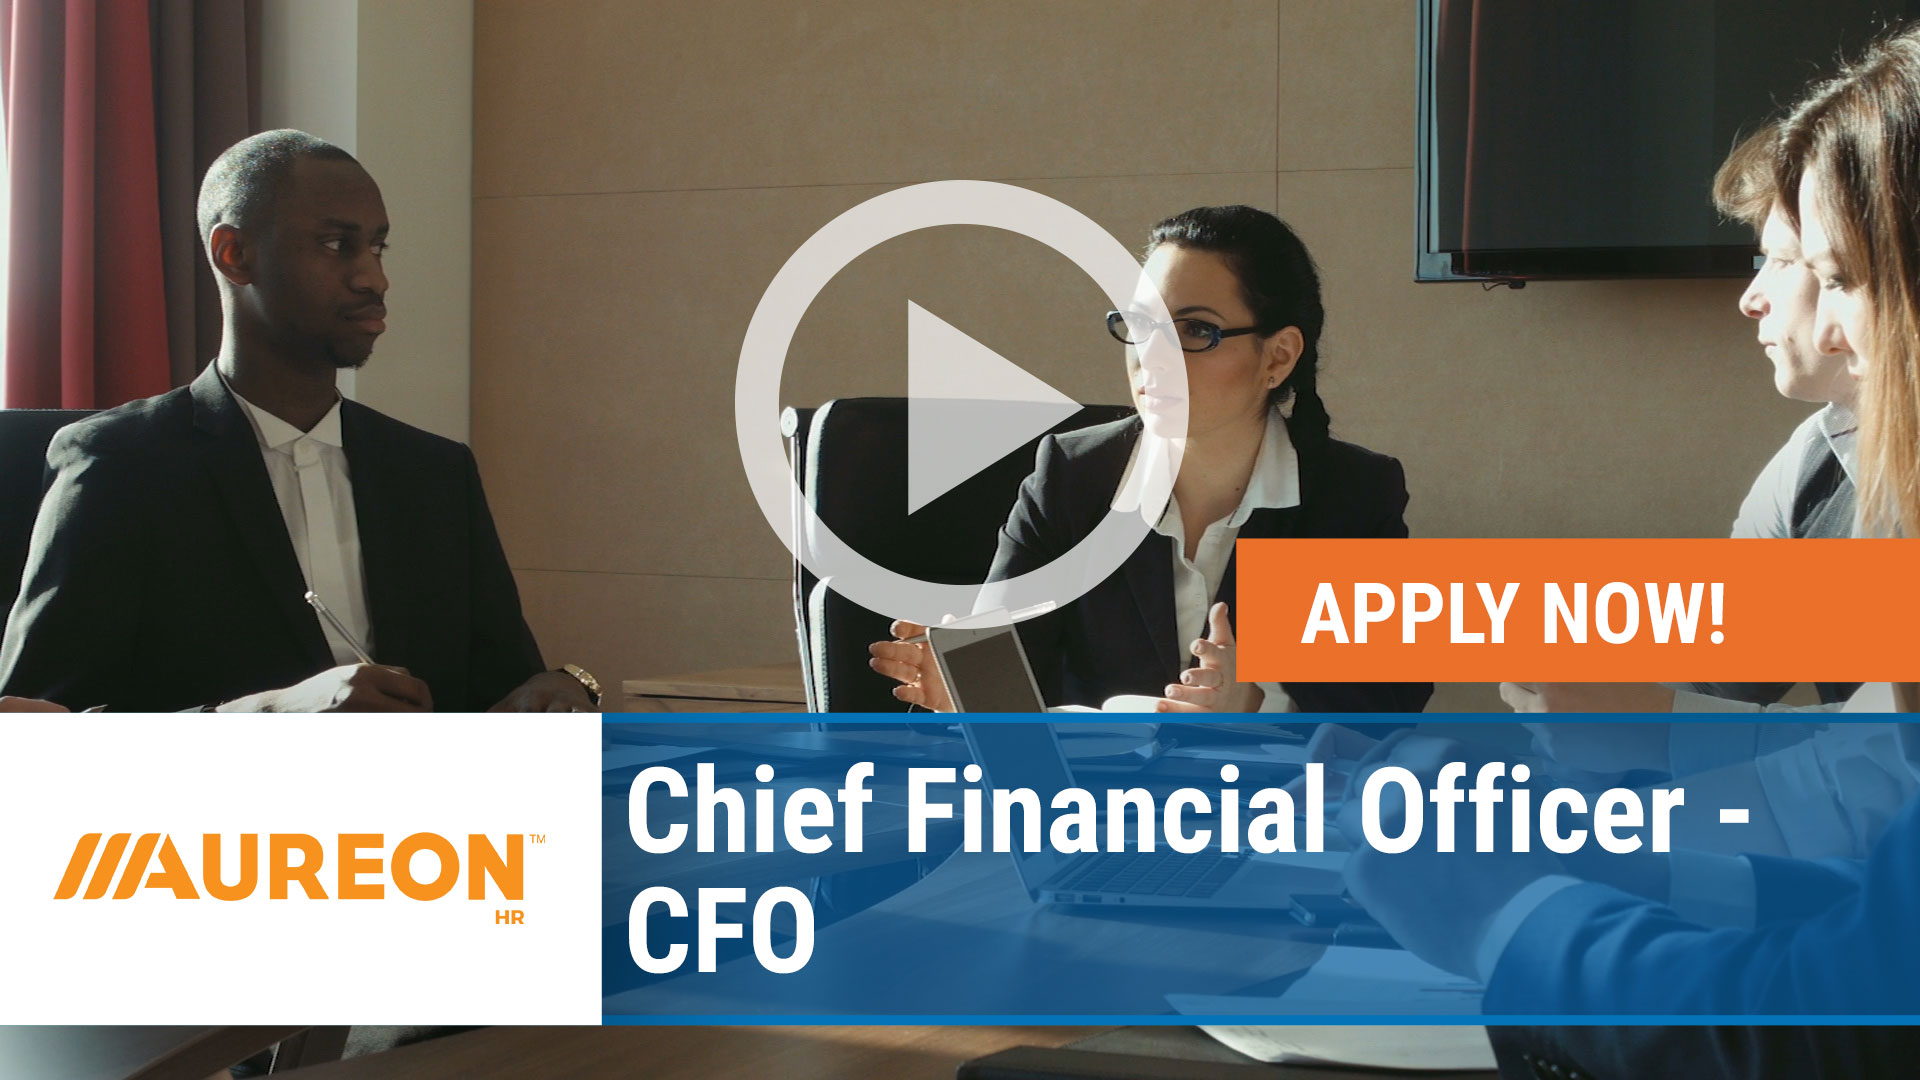 Watch our careers video for available job opening Chief Financial Officer - CFO in Des Moines,  IA